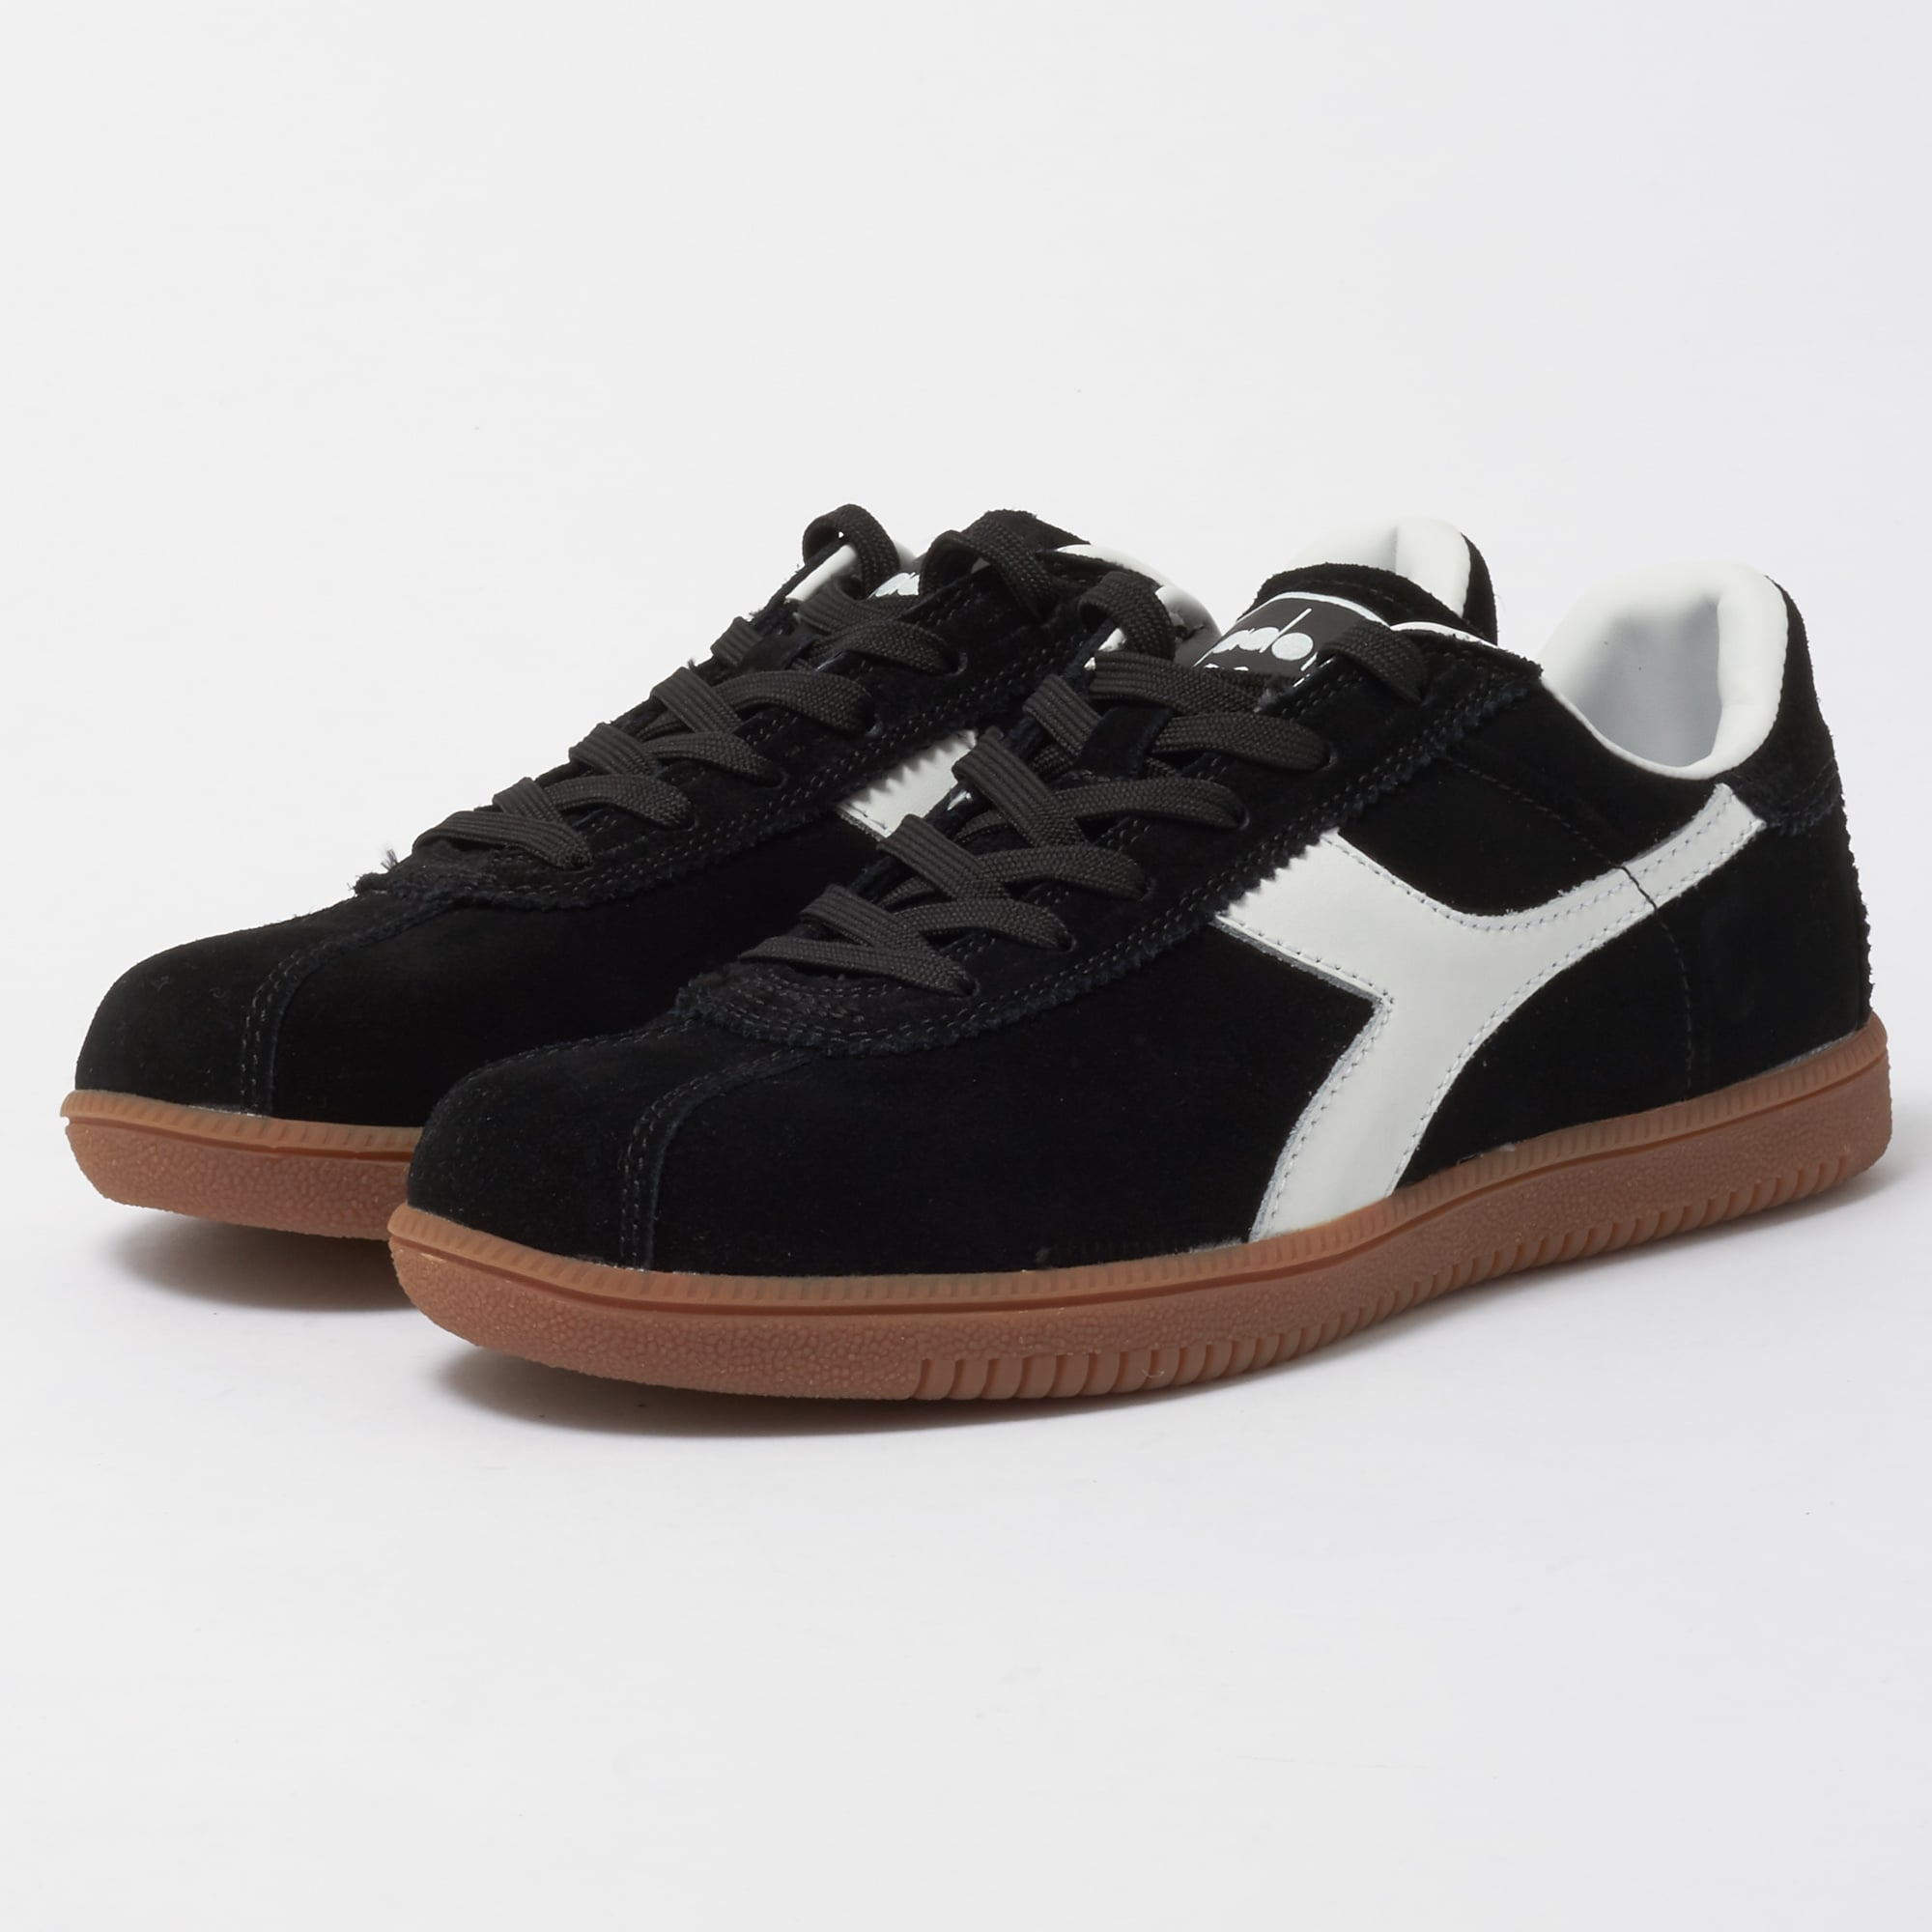 Sneakers for Women On Sale in Outlet, Black, Canvas, 2017, 3.5 8.5 Diadora